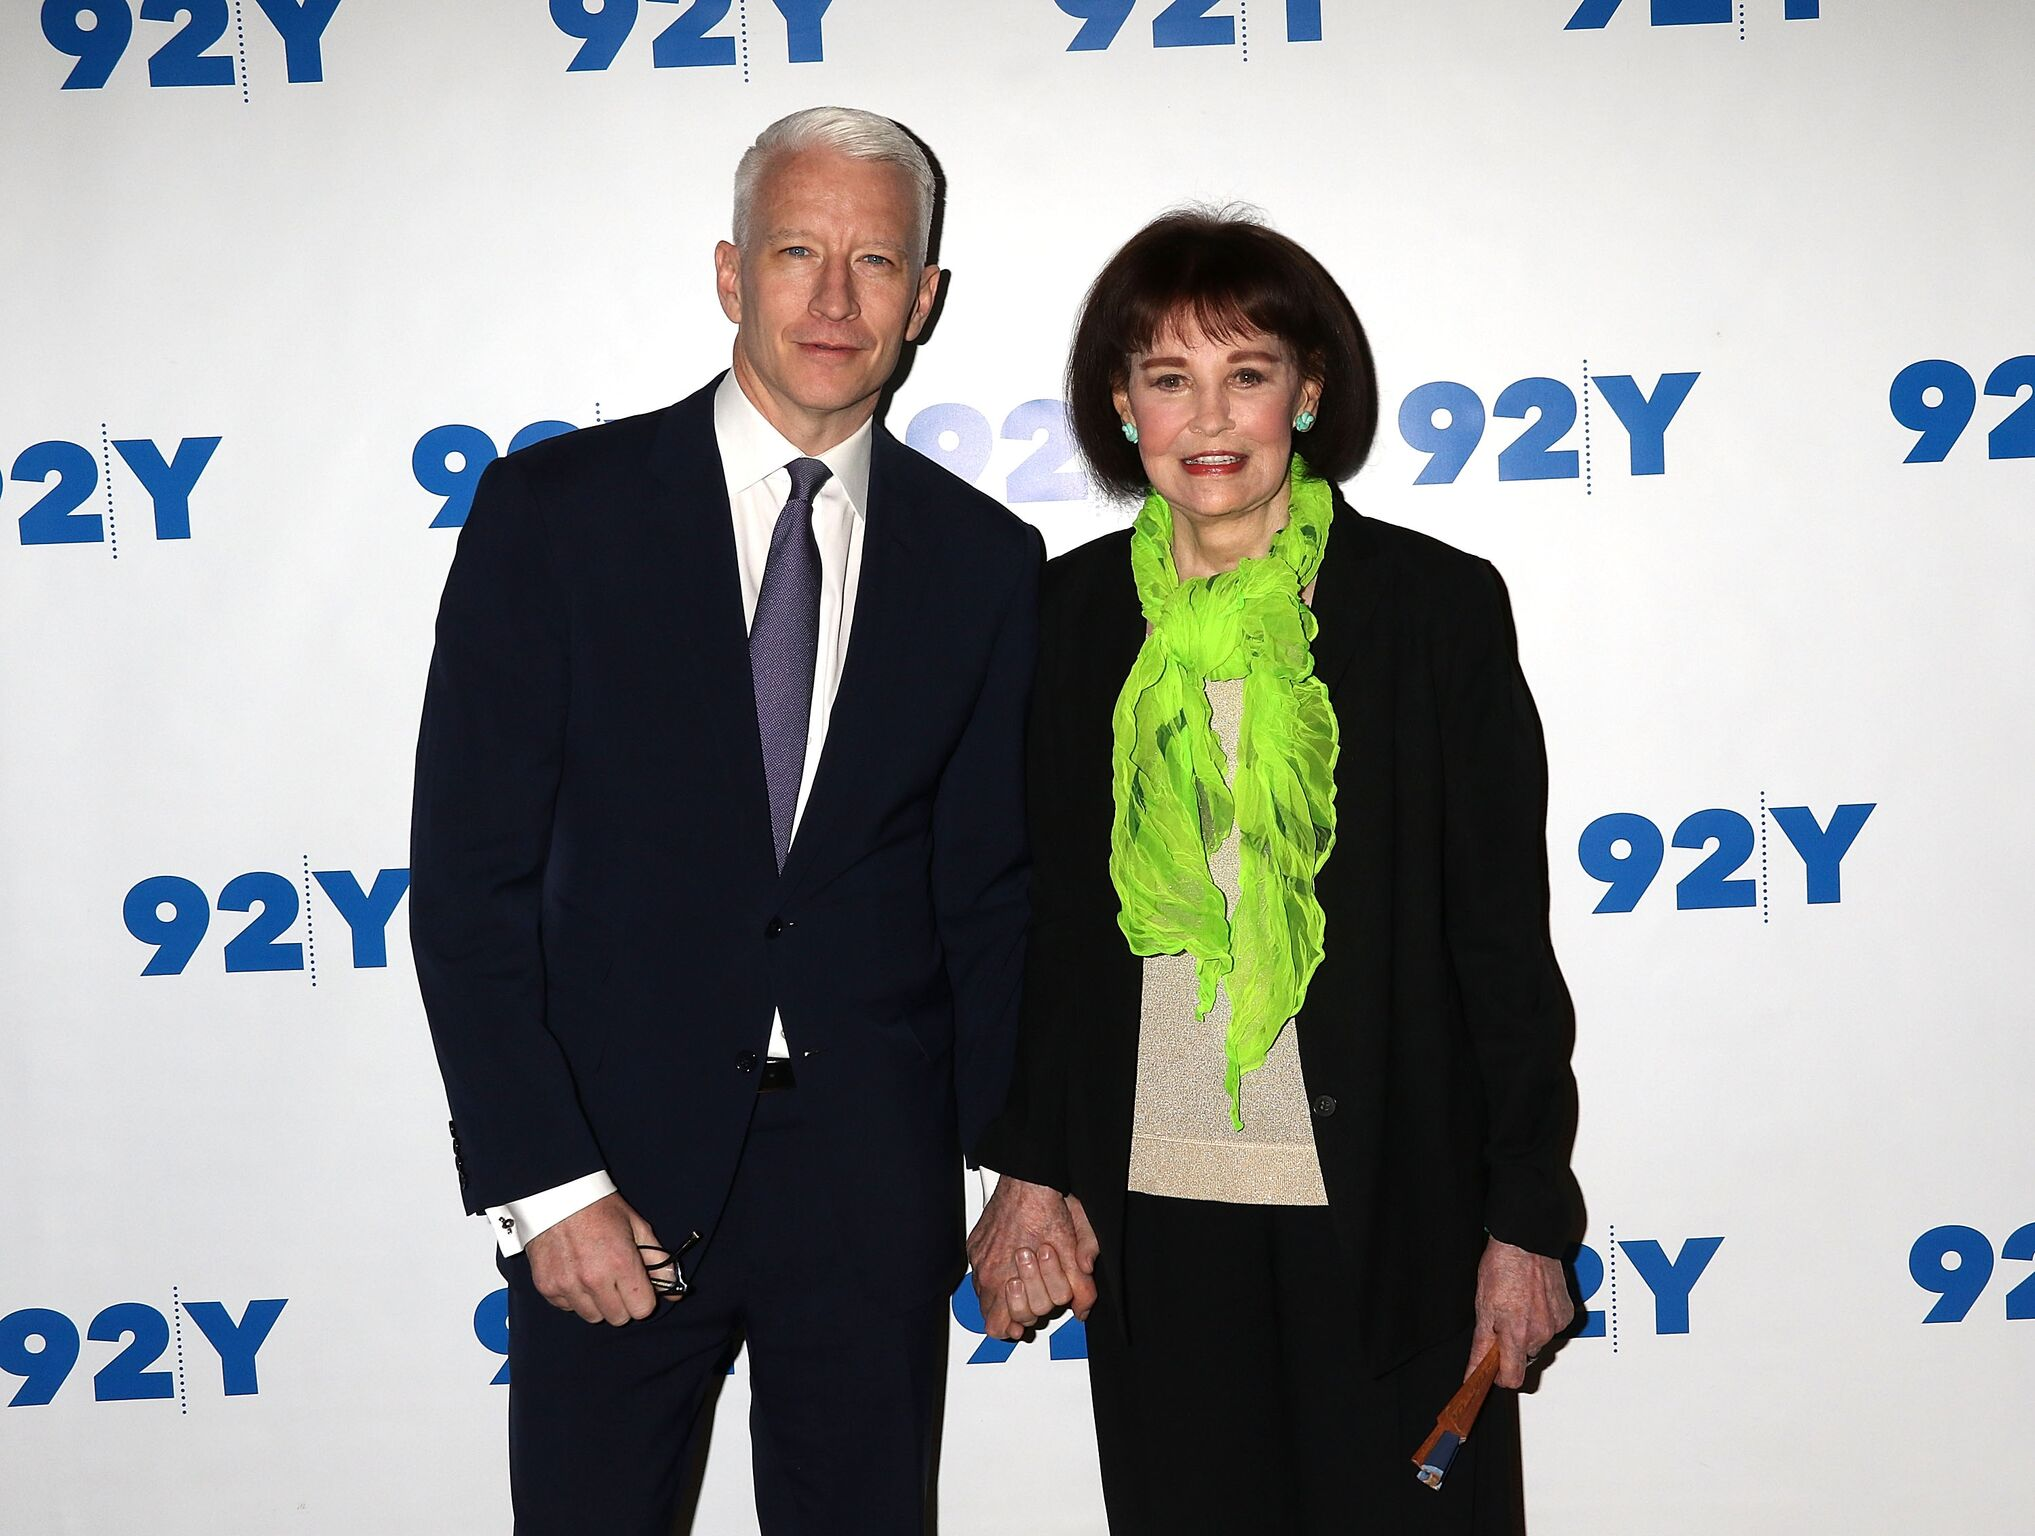 Anderson Cooper and Gloria Vanderbilt attend A Conversation with Anderson Cooper and Gloria Vanderbilt | Getty Images